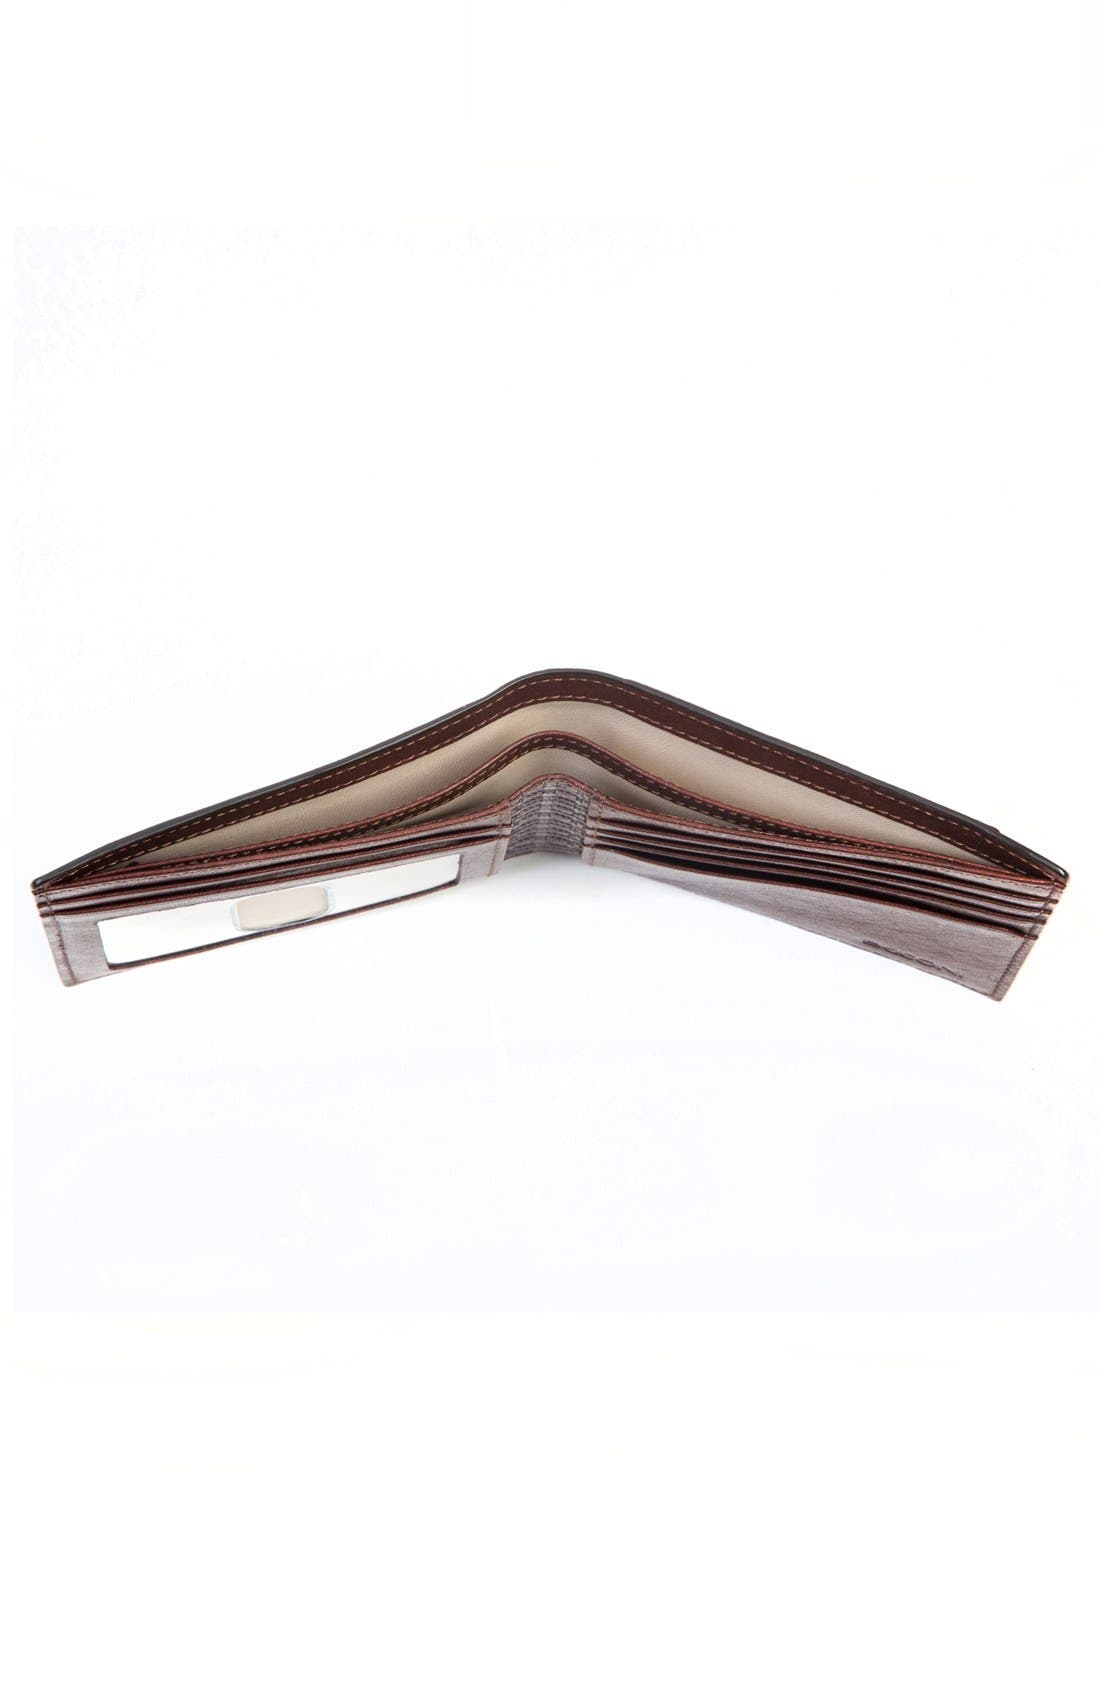 'Becker' Leather Wallet,                             Alternate thumbnail 3, color,                             Whiskey